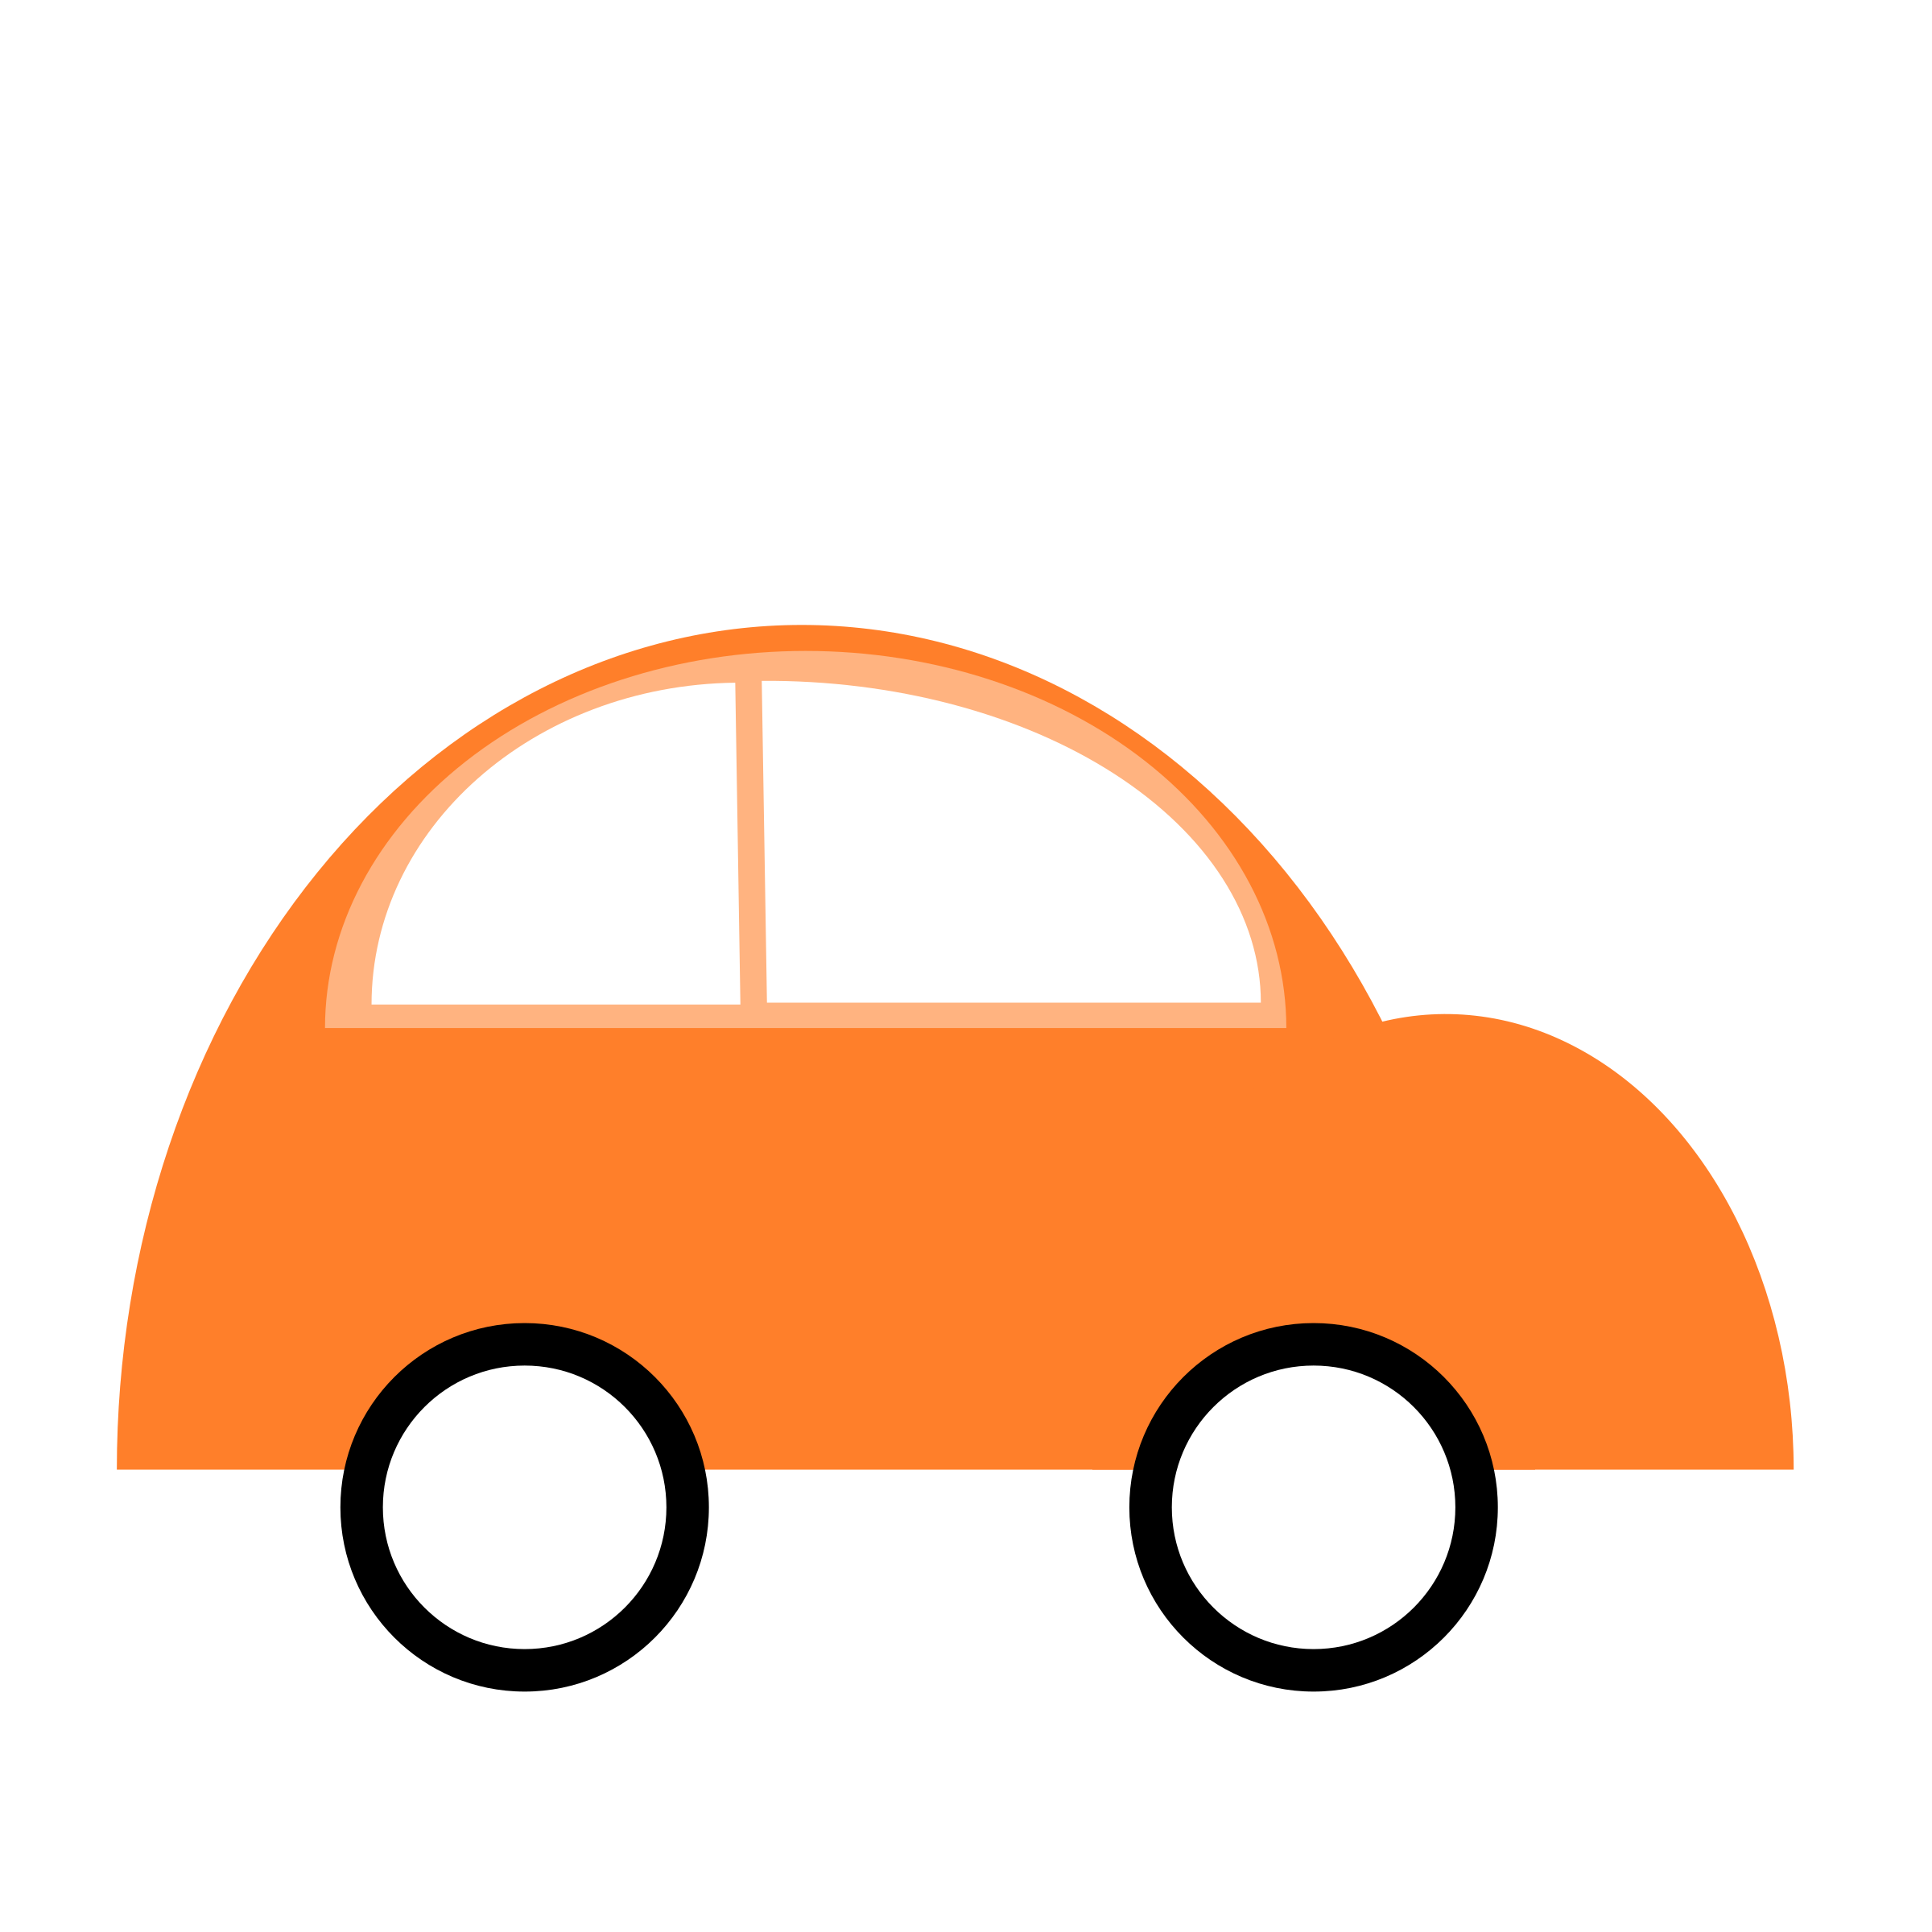 Library Of Orange Car Clipart Freeuse Library Png Files